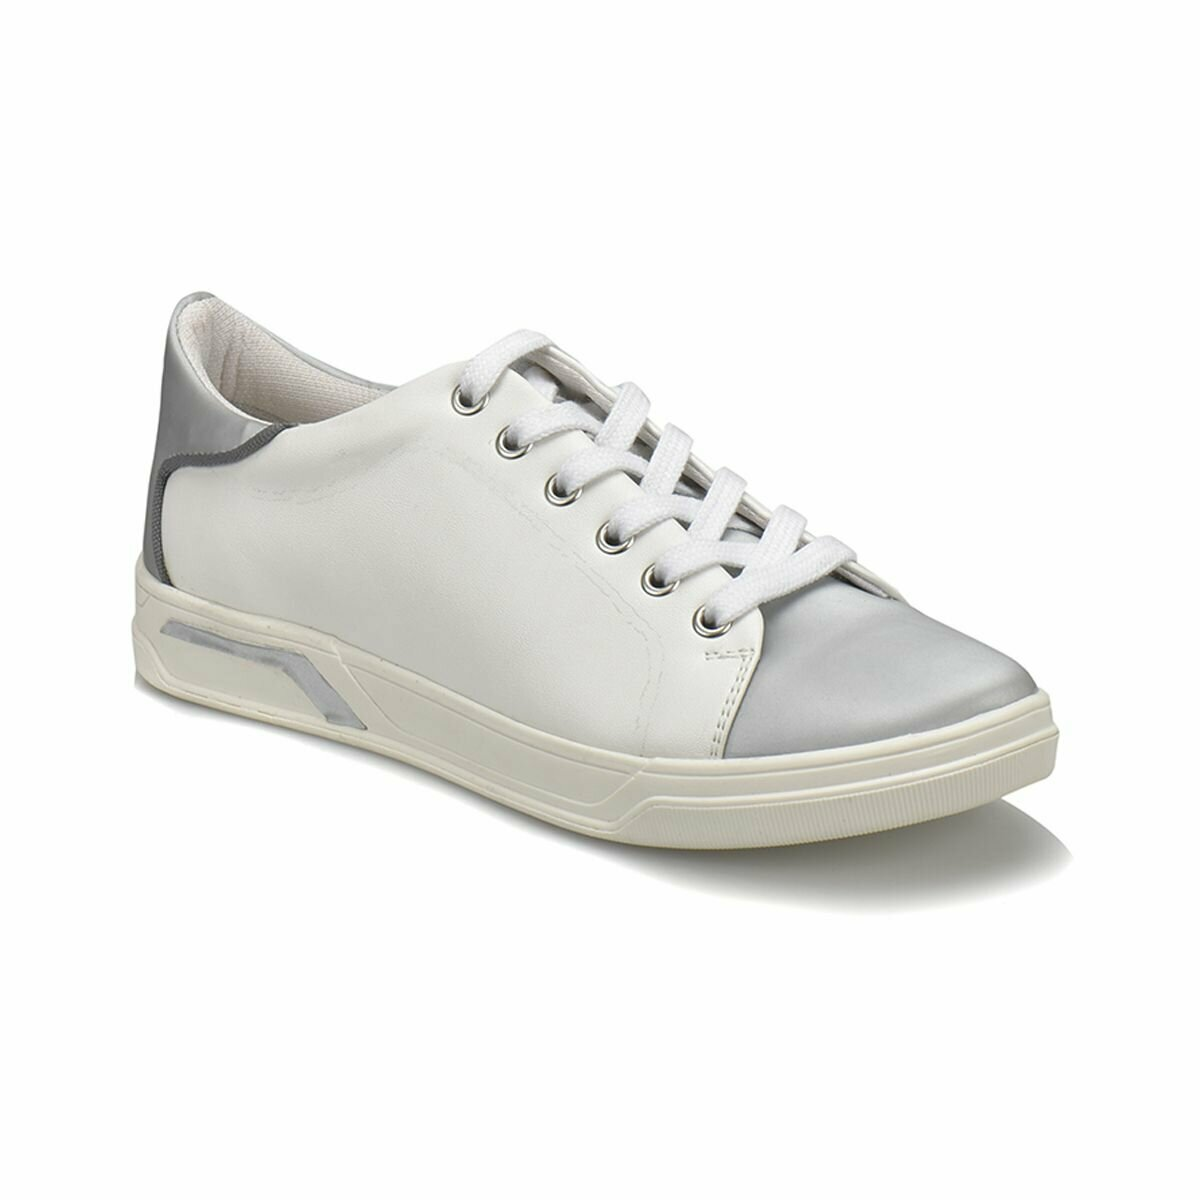 FLO CS18004 White Women 'S Sneaker Shoes BUTIGO